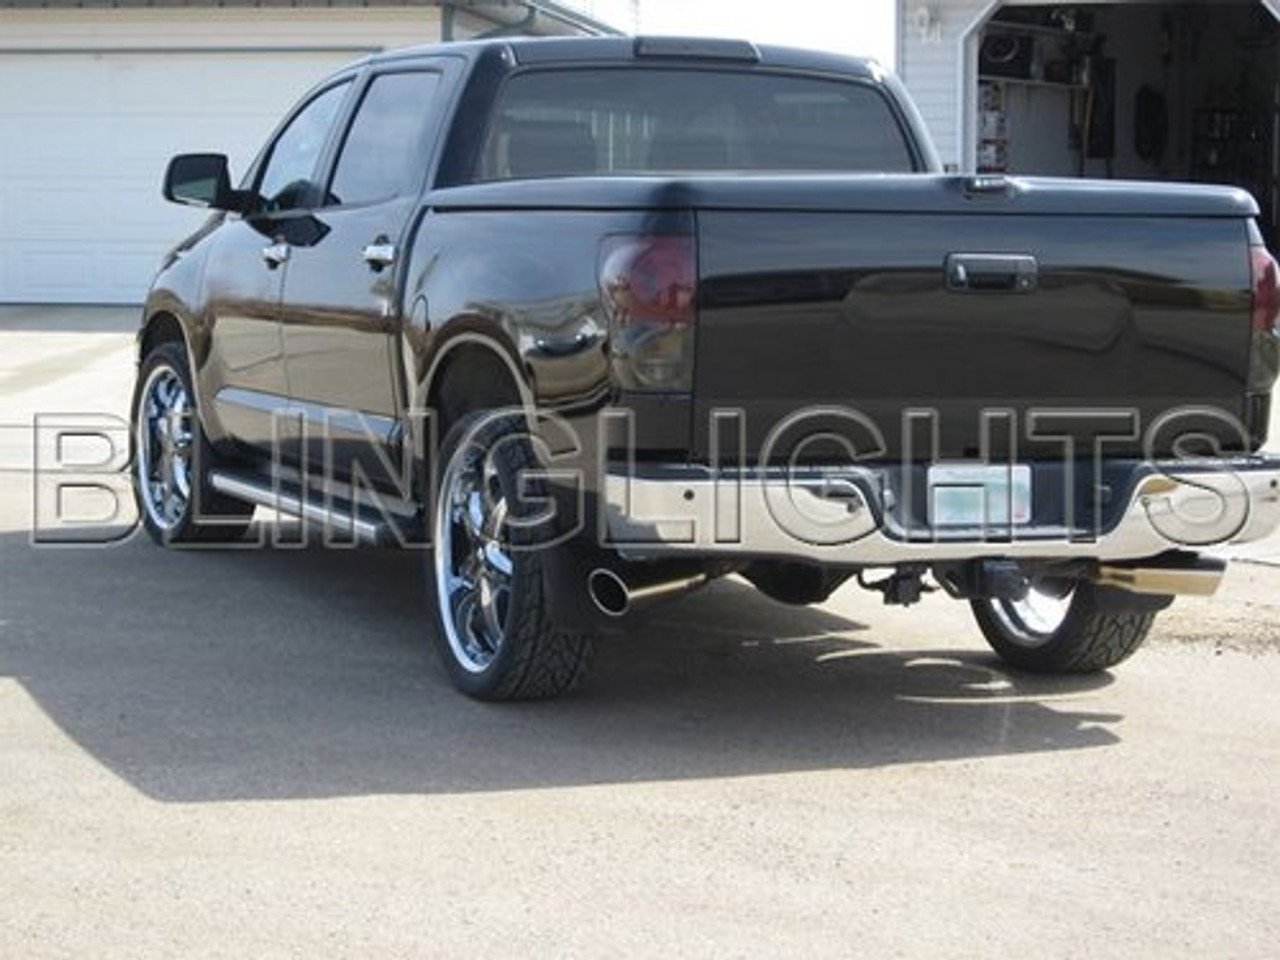 07-13 Toyota Tundra Tinted Tail Lamp Light Overlays Kit Smoked Protection Film